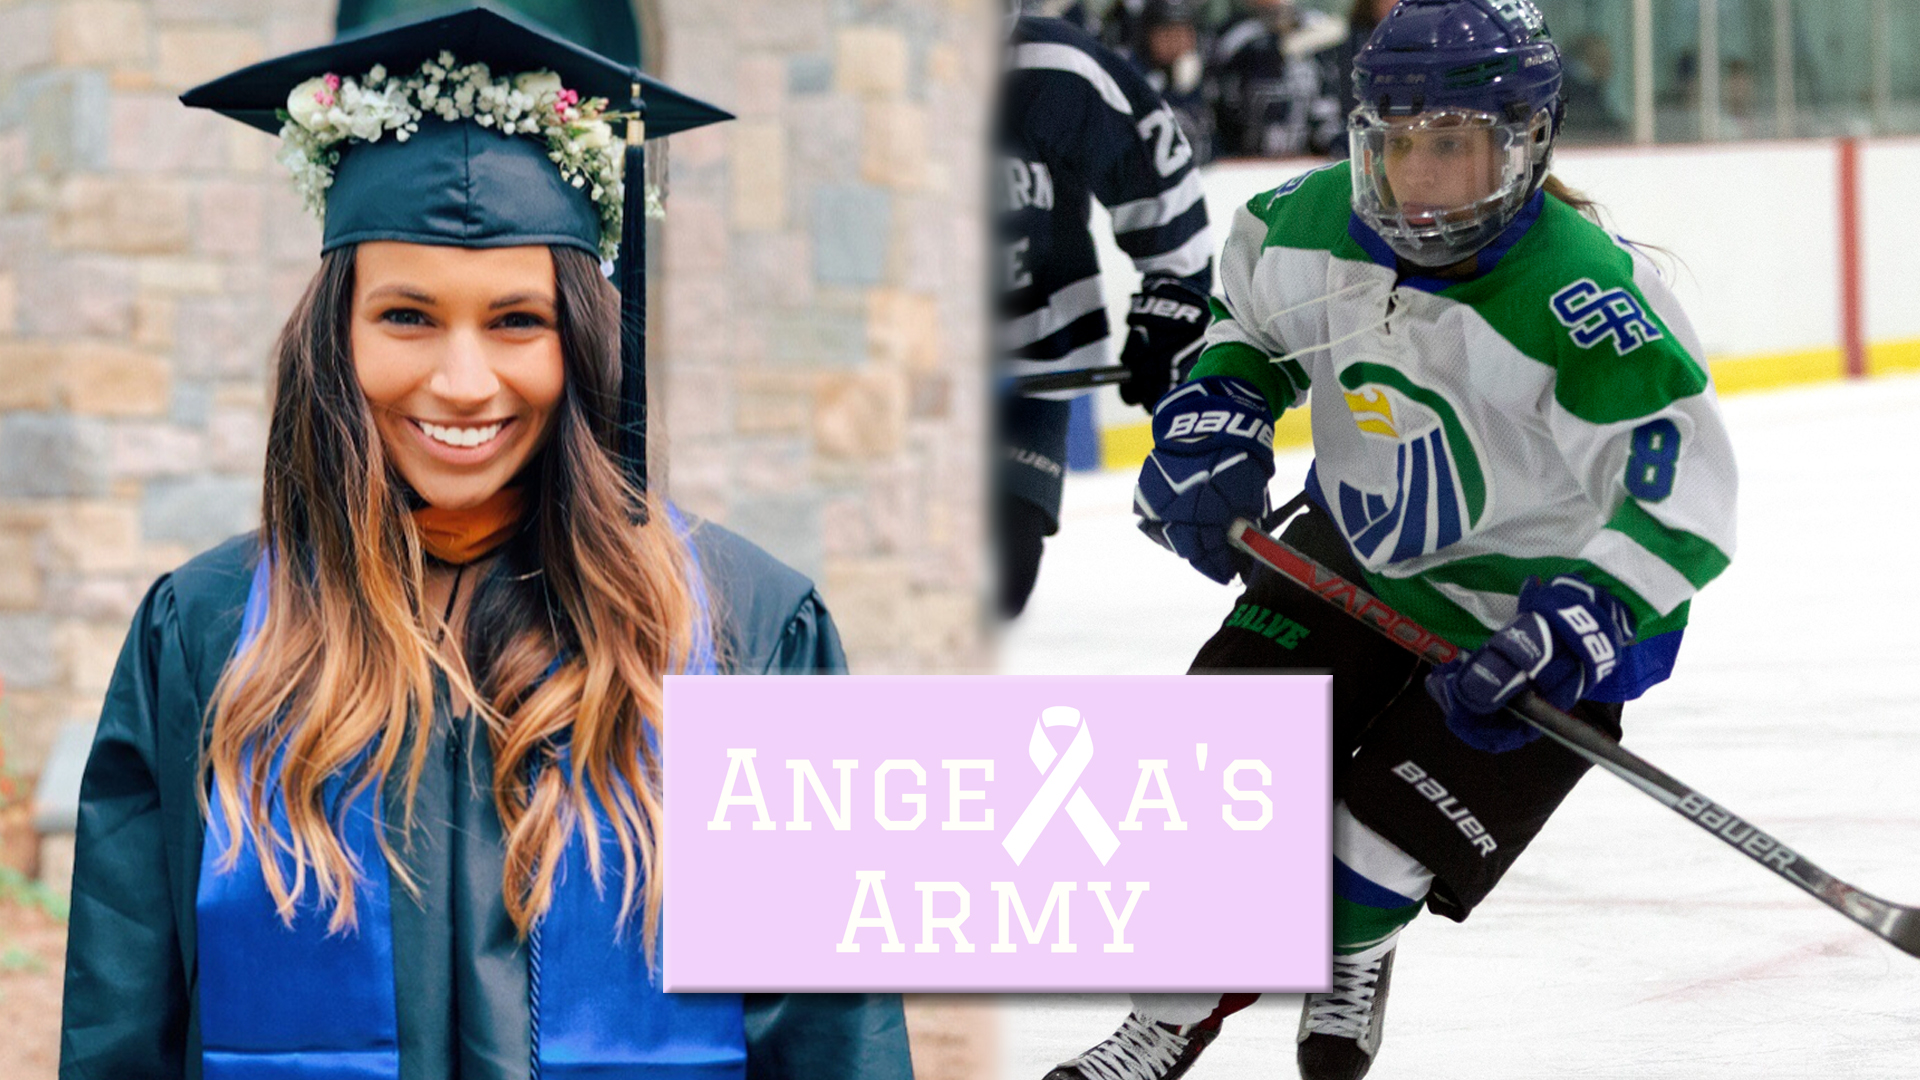 Angela Augusta is a 2019 graduate of Salve Regina and was a four-year member of the women's ice hockey team who was diagnosed with Hodgkin's Lymphoma shortly after graduating.